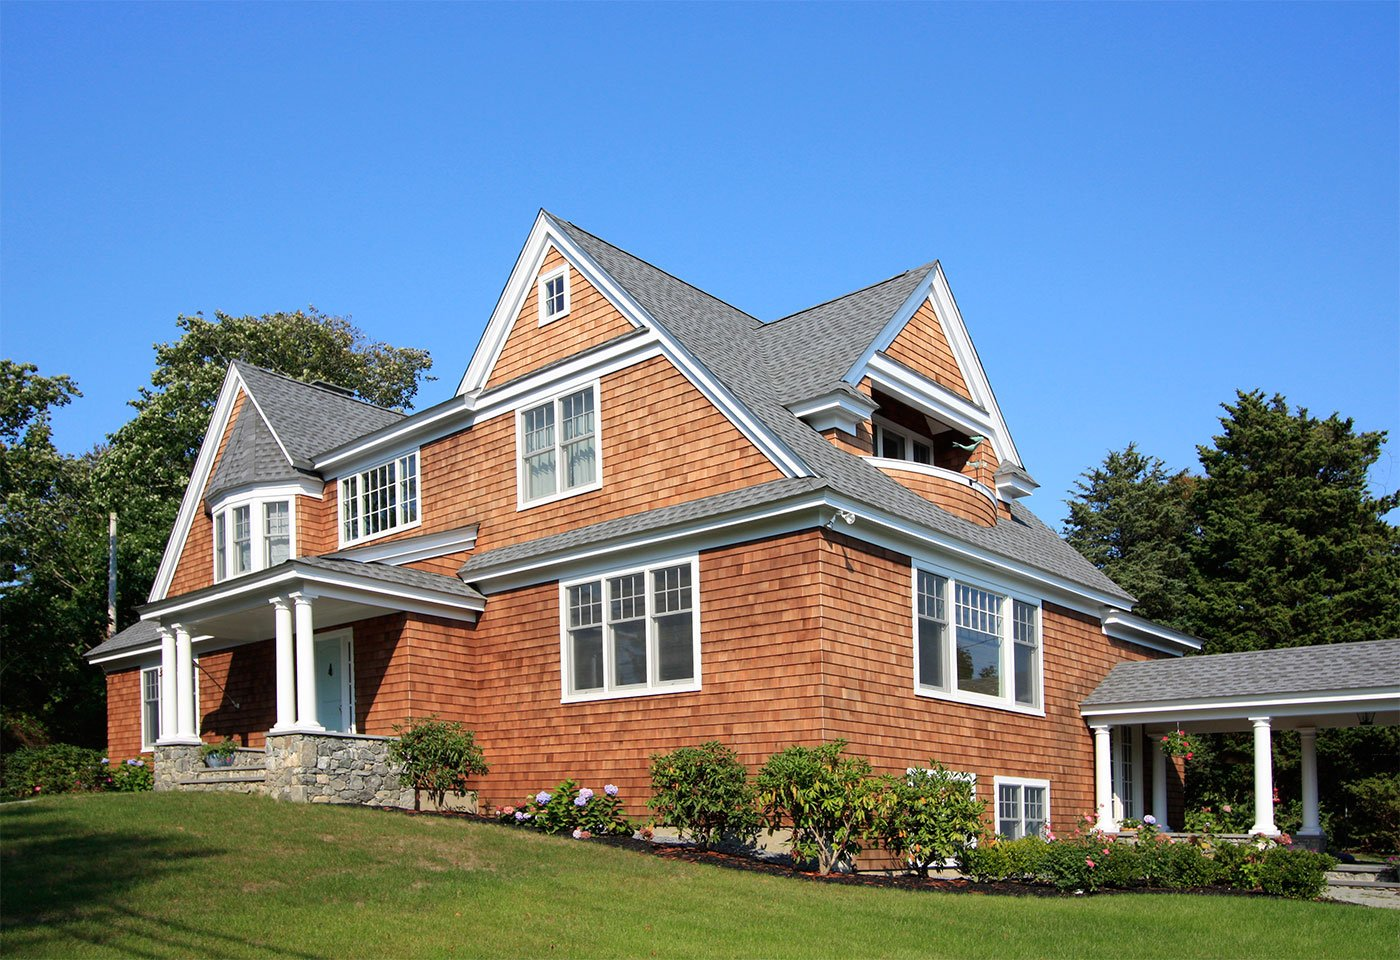 1 Home remodel by in house design - construction build firm in RI